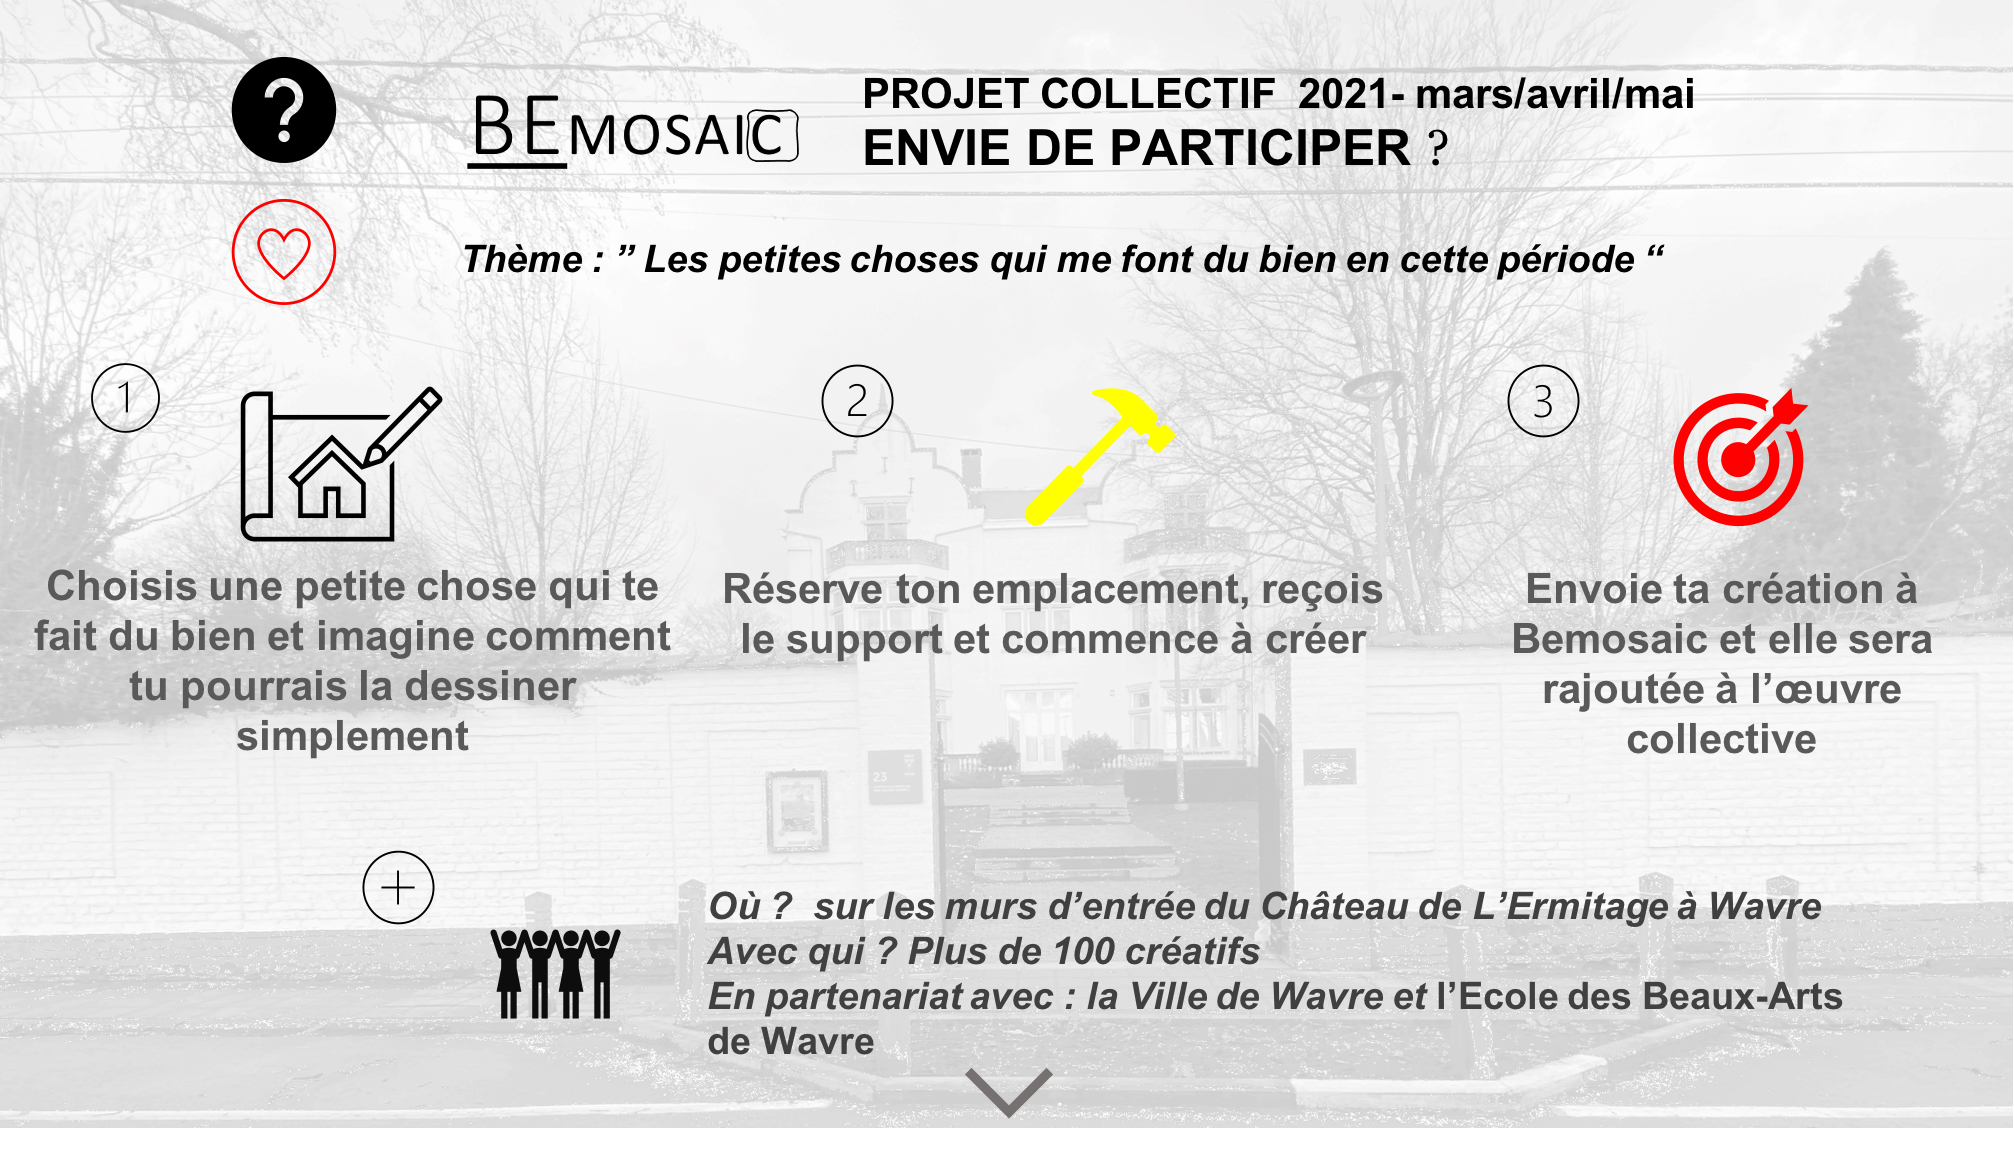 Pcollectif2021